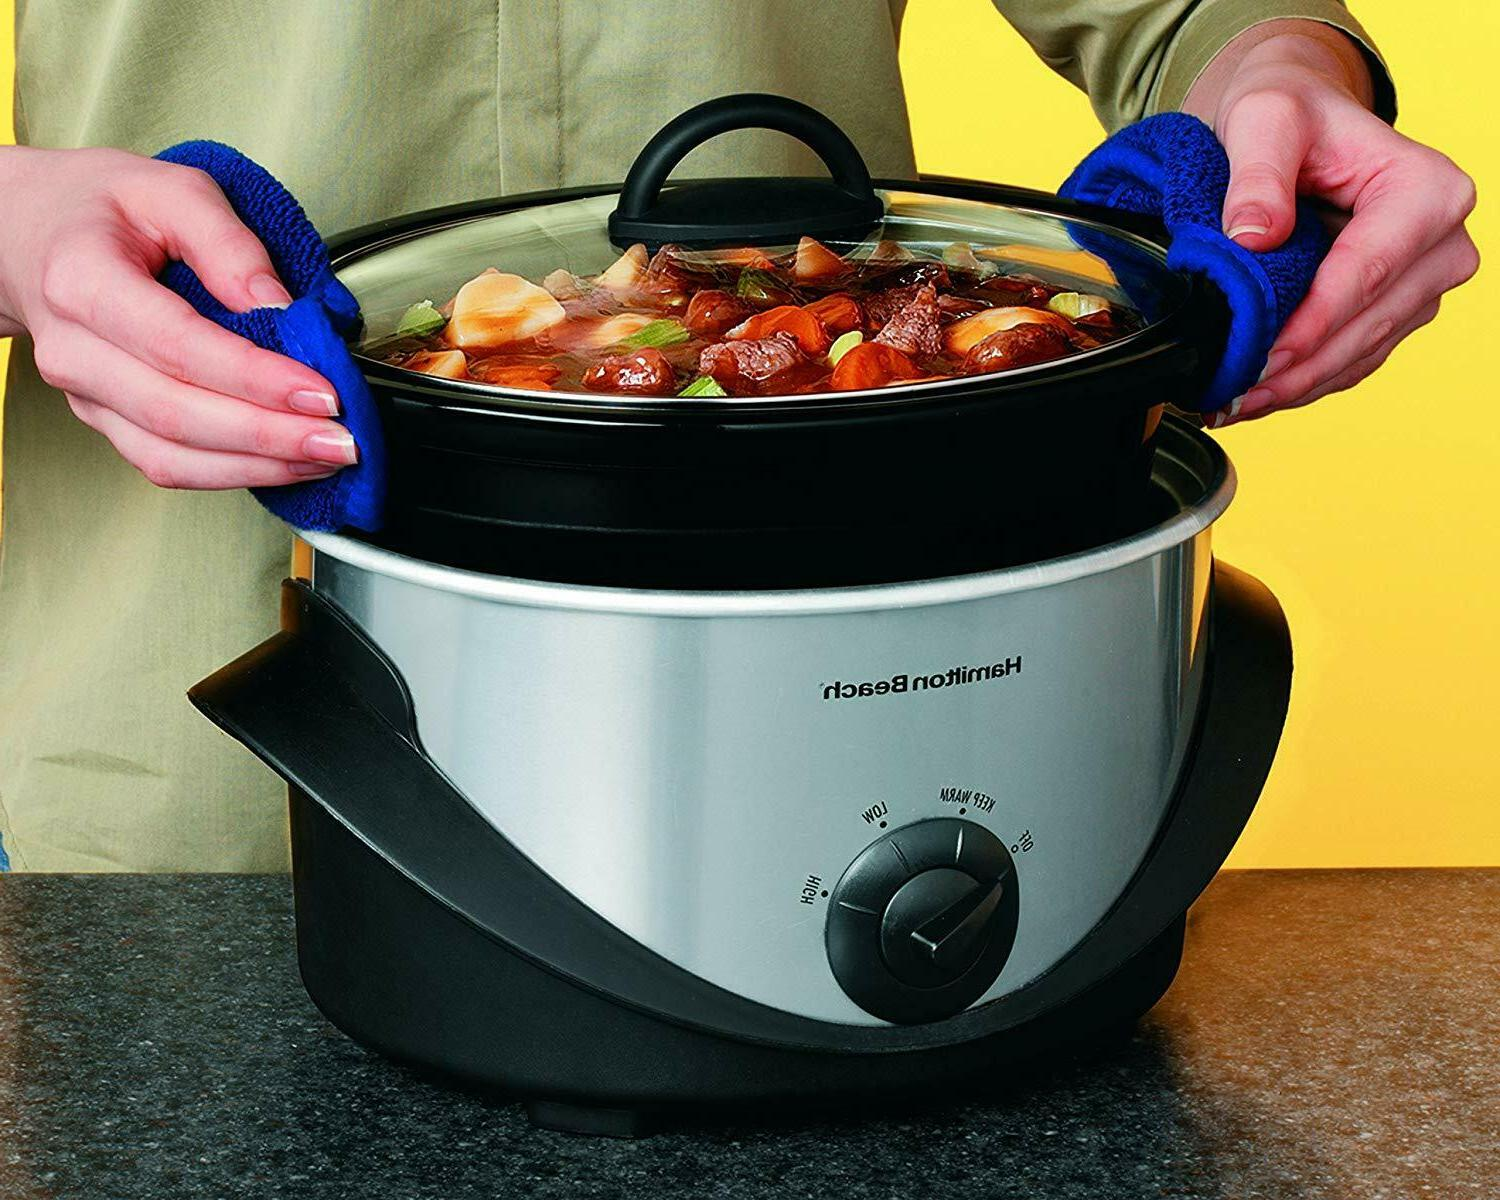 Hamilton Oval Cooker with Instruction